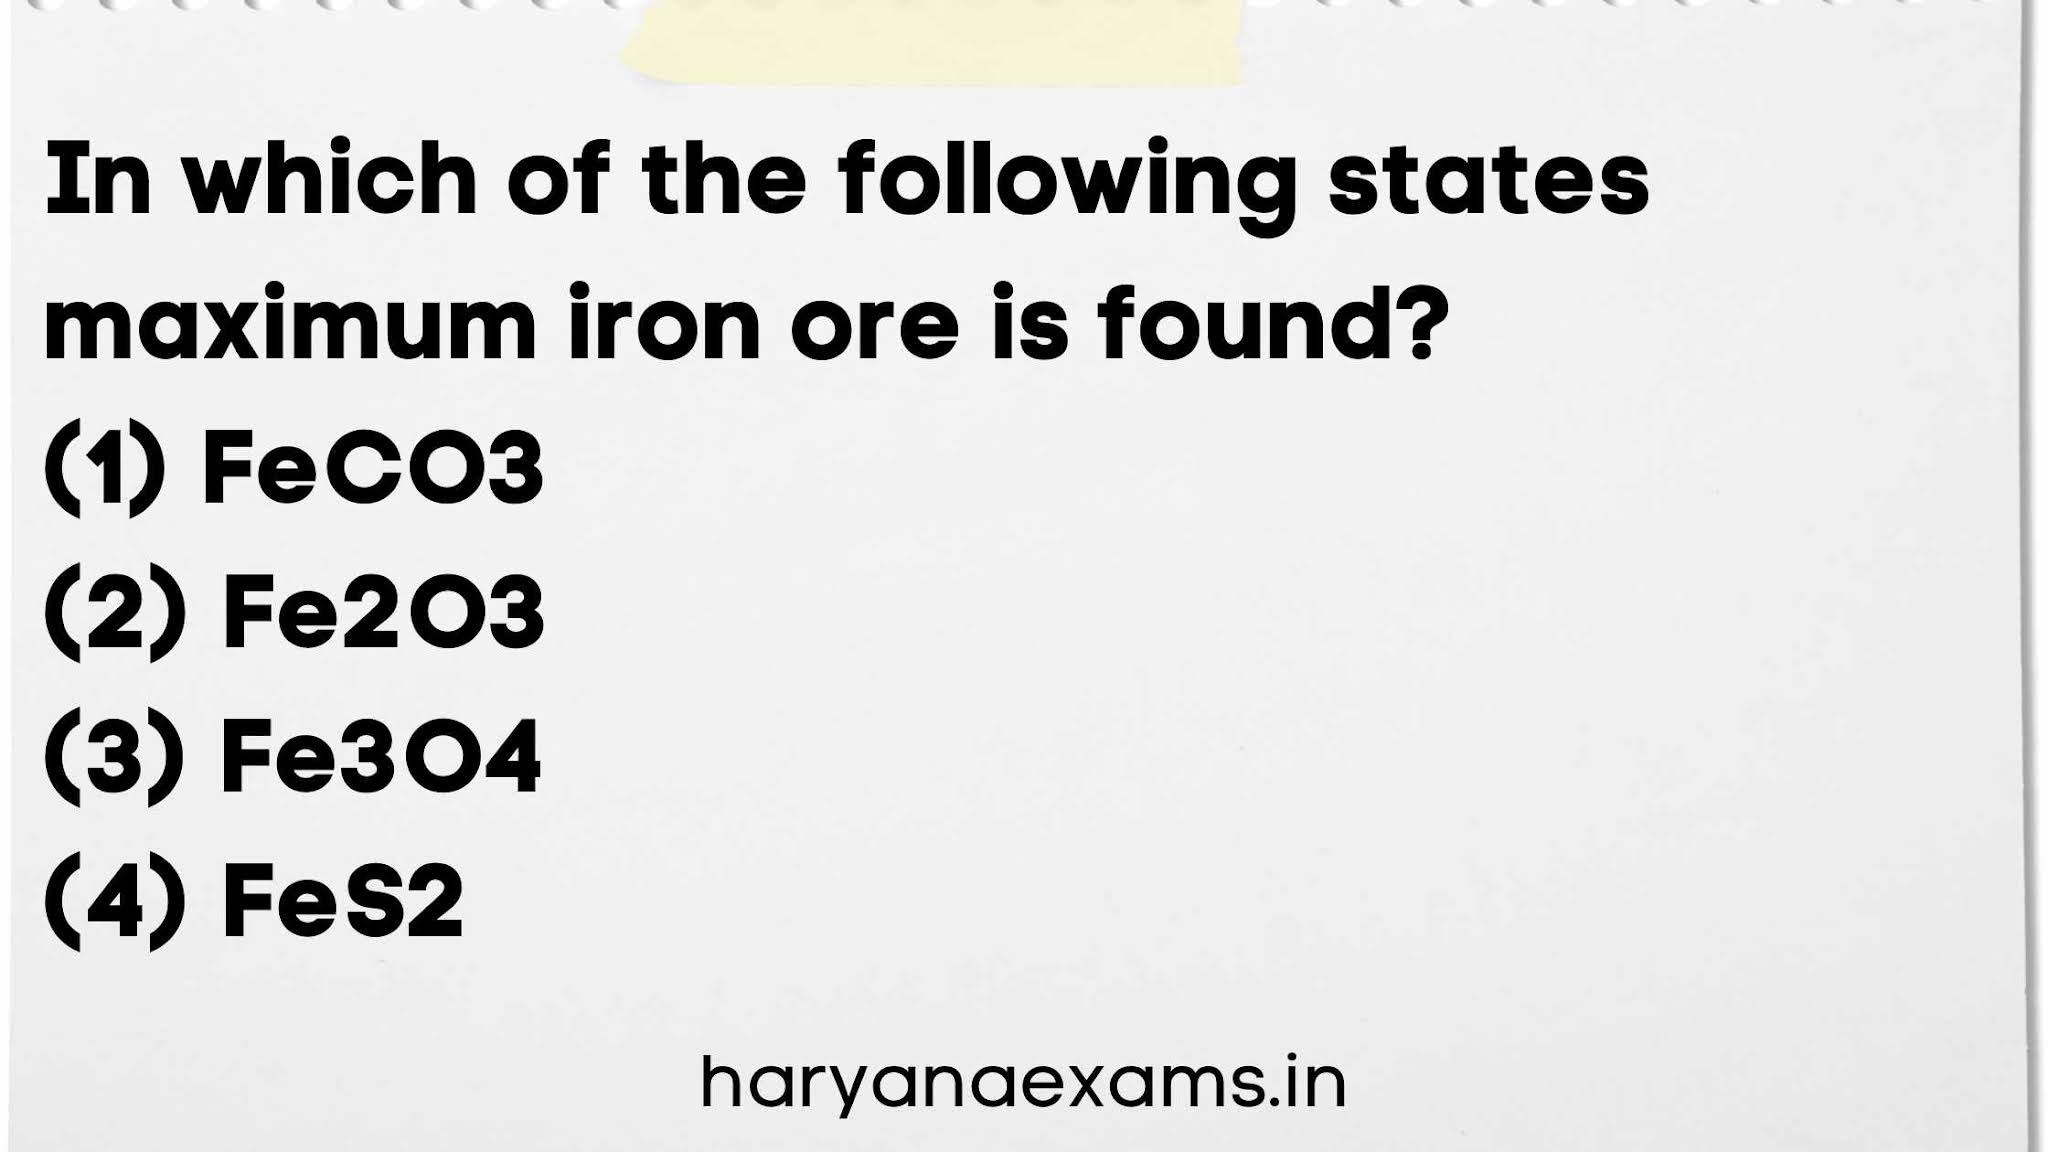 In which of the following states maximum iron ore is found?   (1) FeCO3  (2) Fe2O3   (3) Fe3O4  (4) FeS2